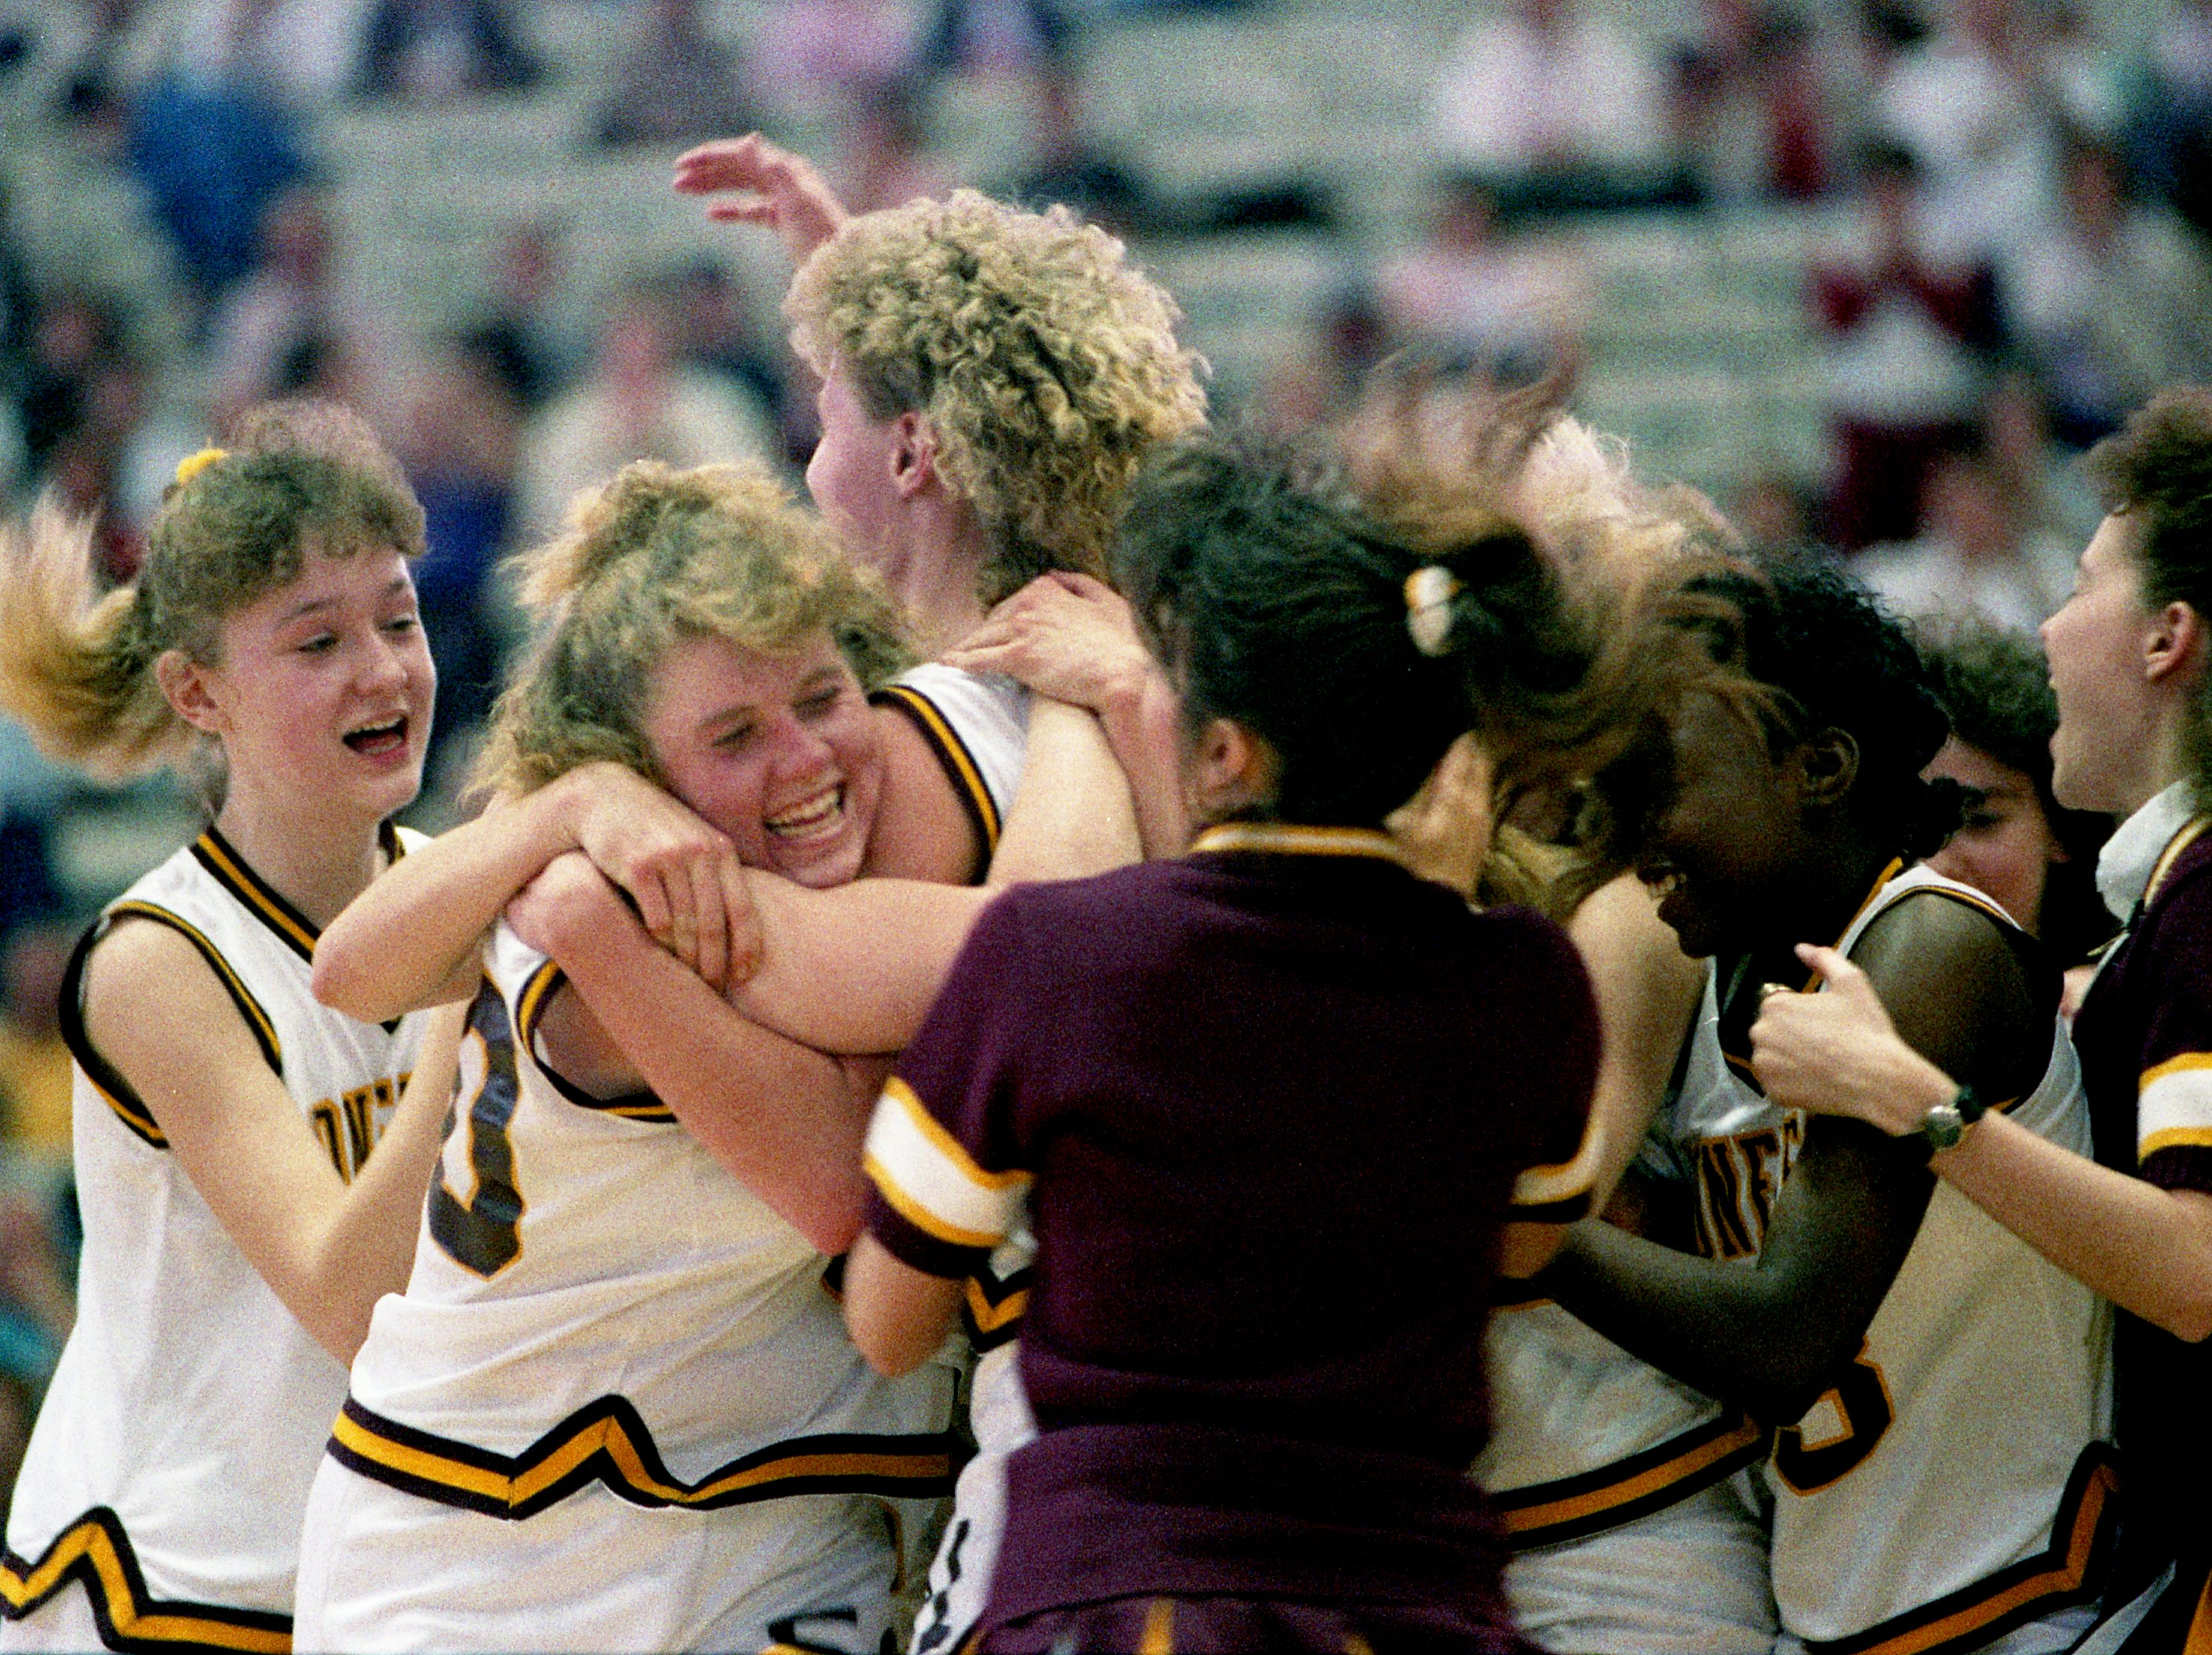 Jubilant Cannon County High players Tara Soloman, Reggie King, Julie Powell and others celebrate their 67-60 overtime victory over two-time defending champions South Greene during the first round of the TSSAA Class AA State tournament at MTSU's Murphy Center in Murfreesboro on March 9, 1989.